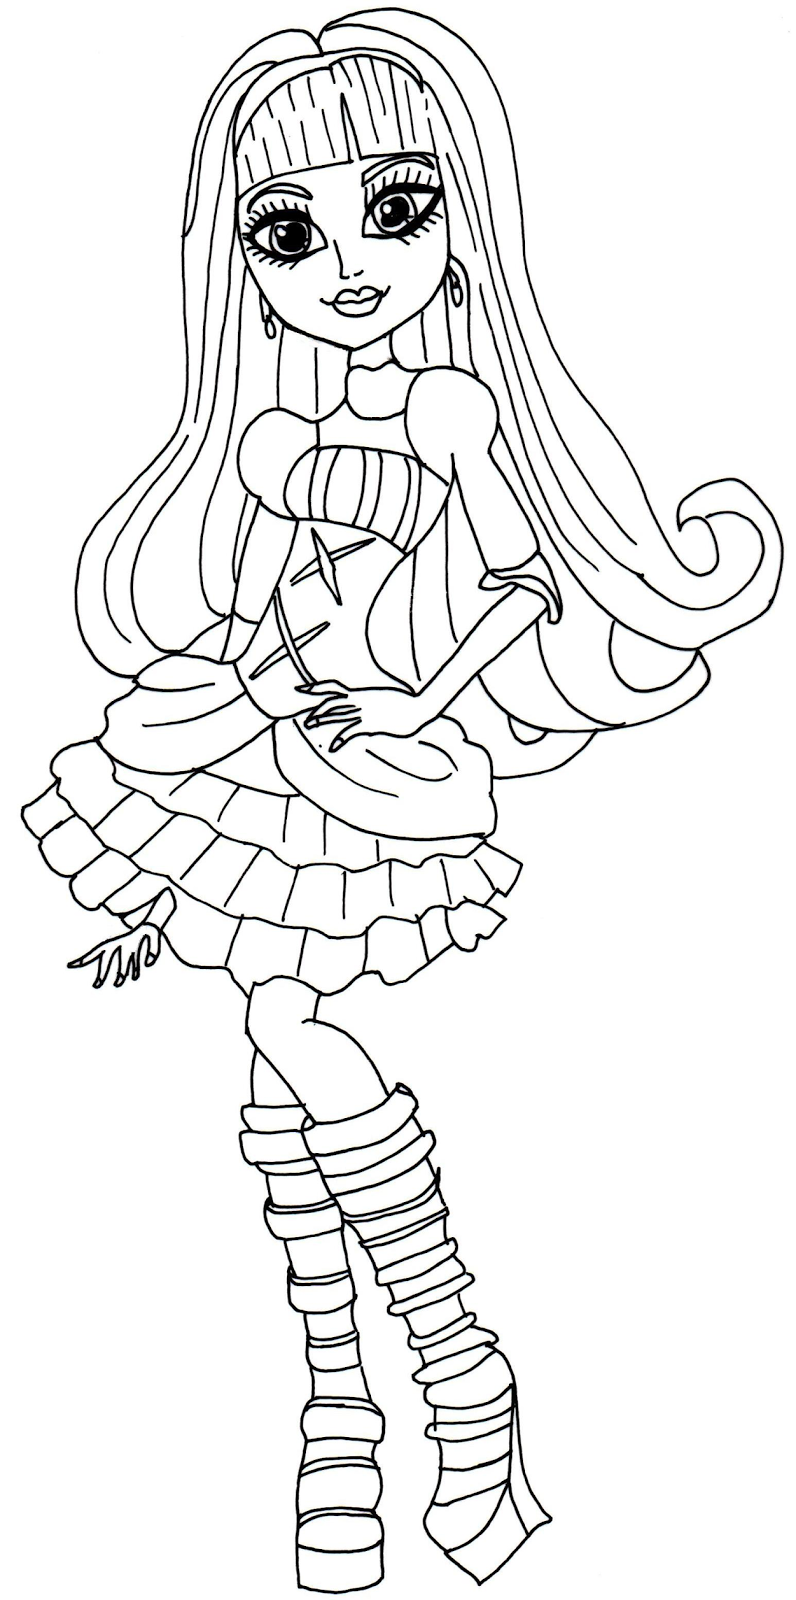 Fan image with regard to printable monster high coloring pages